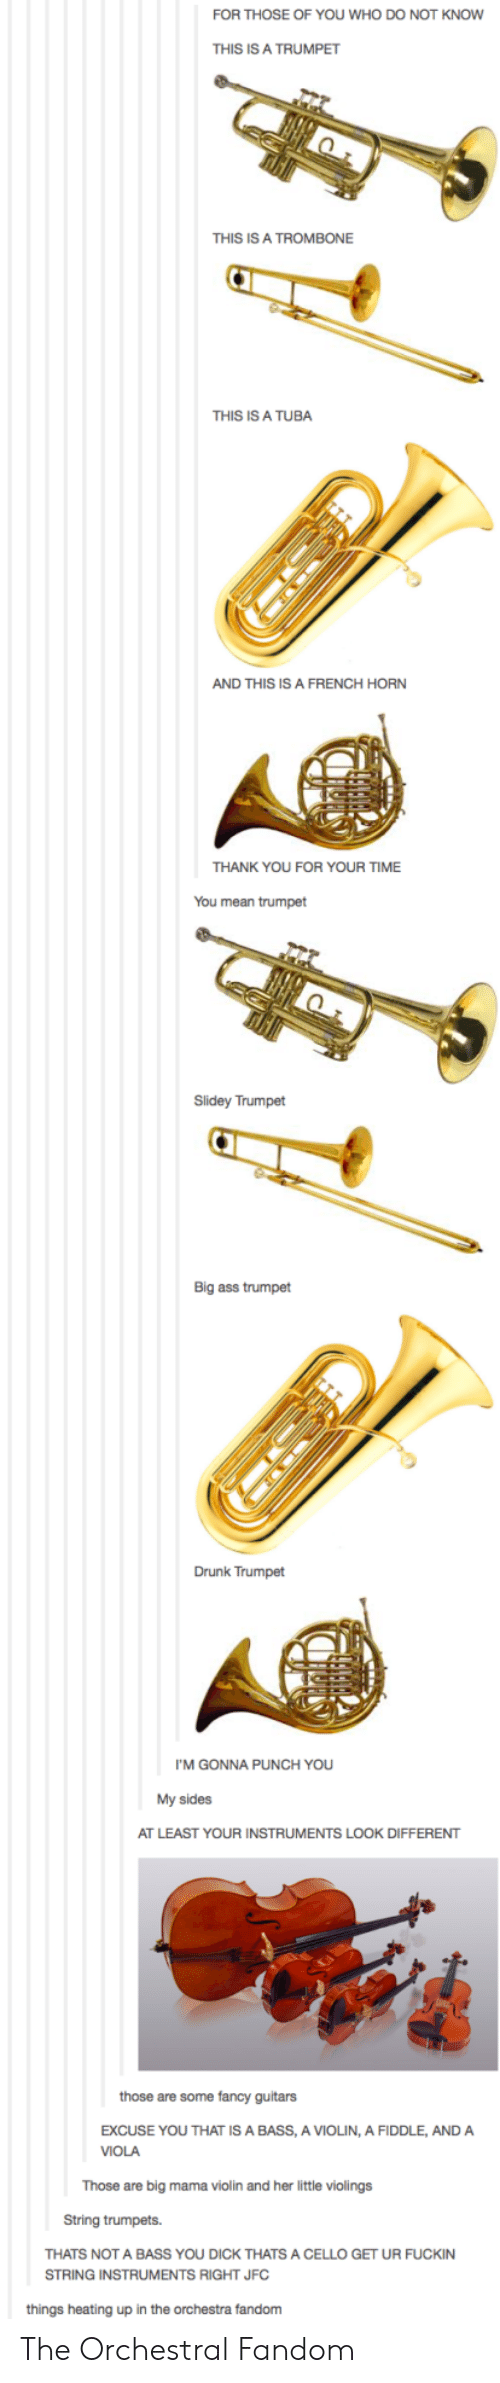 Horning: FOR THOSE OF YOU WHO DO NOT KNOW  THIS IS A TRUMPET  THIS IS A TROMBONE  THIS IS A TUBA  AND THIS IS A FRENCH HORN  THANK YOU FOR YOUR TIME  You mean trumpet  Slidey Trumpet  Big ass trumpet  Drunk Trumpet  I'M GONNA PUNCH YOU  My sides  AT LEAST YOUR INSTRUMENTS LOOK DIFFERENT  those are some fancy guitars  EXCUSE YOU THAT IS A BASS, A VIOLIN, A FIDDLE, ANDA  VIOLA  Those are big mama violin and her little violings  String trumpets.  THATS NOT A BASS YOU DICK THATS A CELLO GET UR FUCKIN  STRING INSTRUMENTS RIGHT JFC  things heating up in the orchestra fandom The Orchestral Fandom